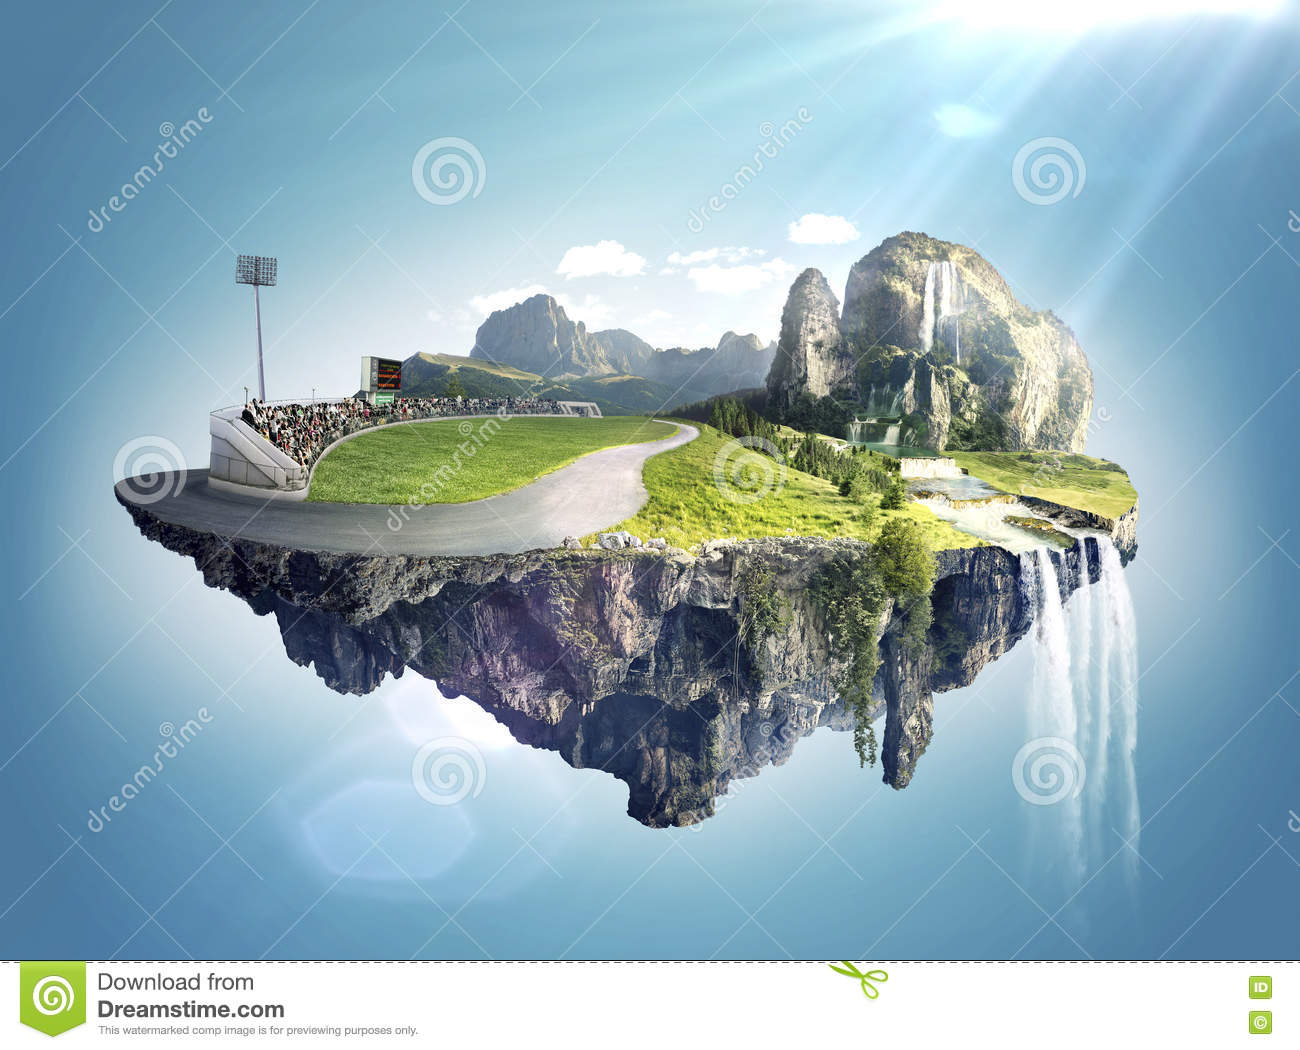 Amazing fantasy scenery with floating islands and water fall